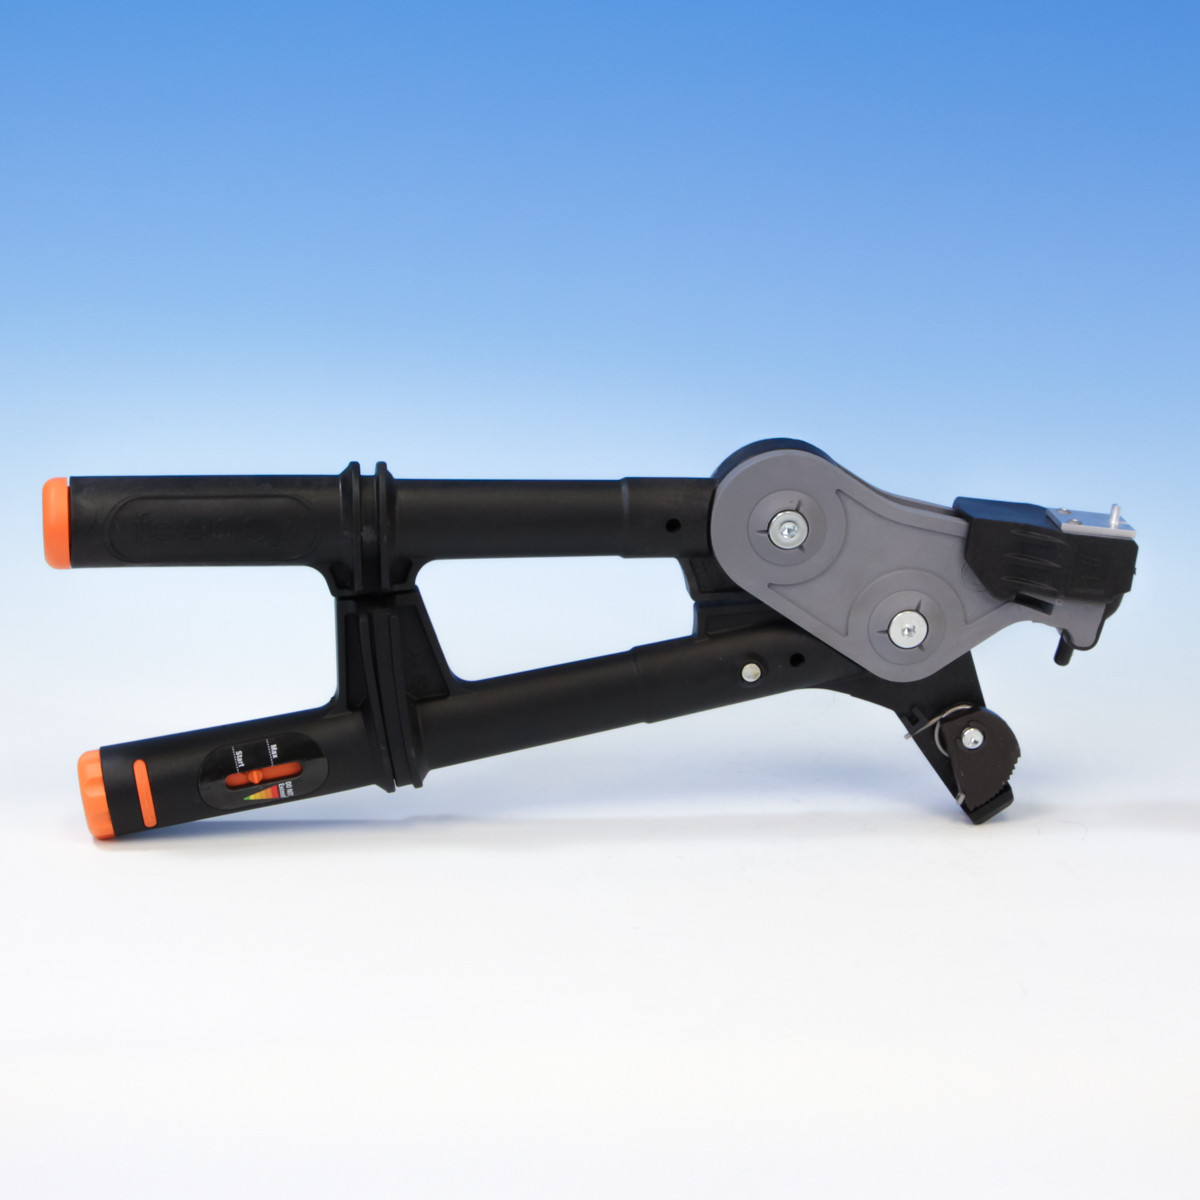 Cable Tensioning Tool for CableRail